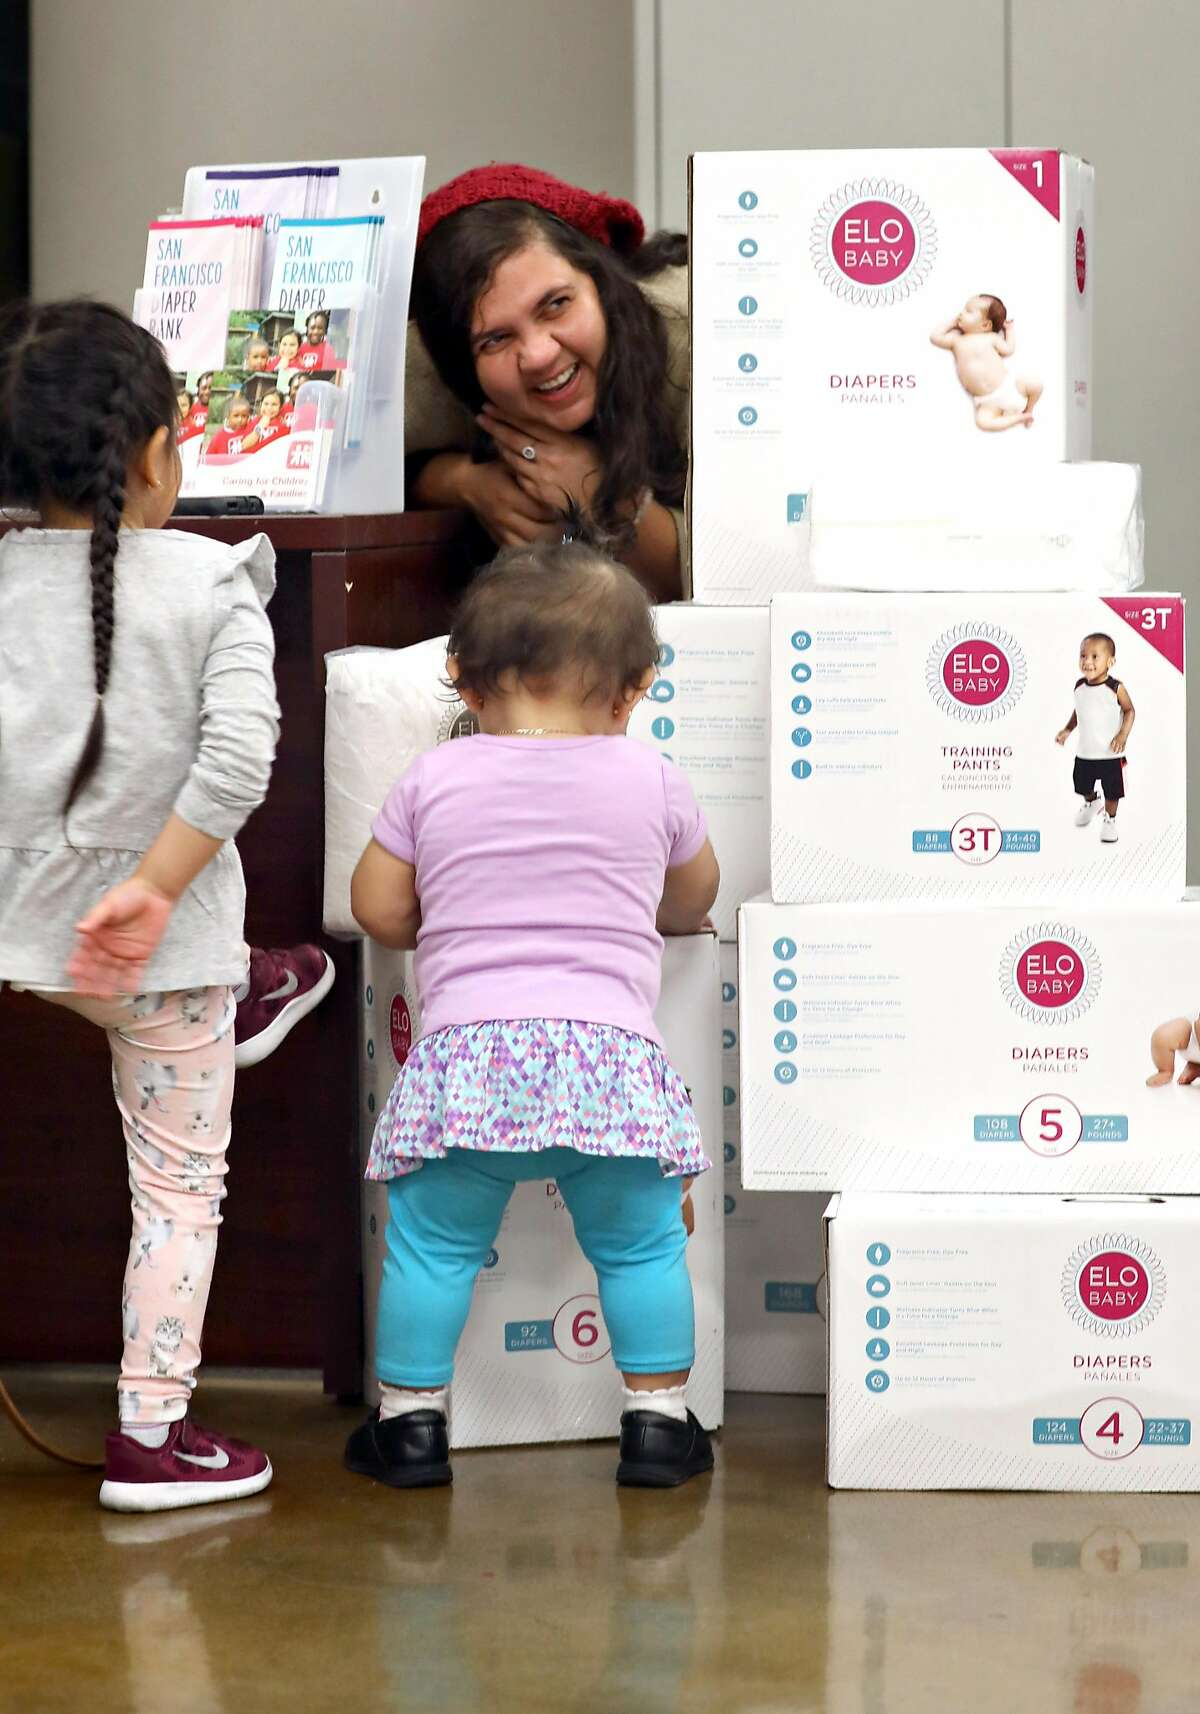 Resource and referral services Marcela Araujo (middle) at the diaper bank where Camila Saavedra-Montano (left), 3 years old, and Jimena Sarci Rivas (middle) browse her desk on Friday, Nov. 22, 2019, in San Francisco, Calif. San Francisco this month became the first county in the US to hand out free diapers with its SNAP (food stamp) benefits.